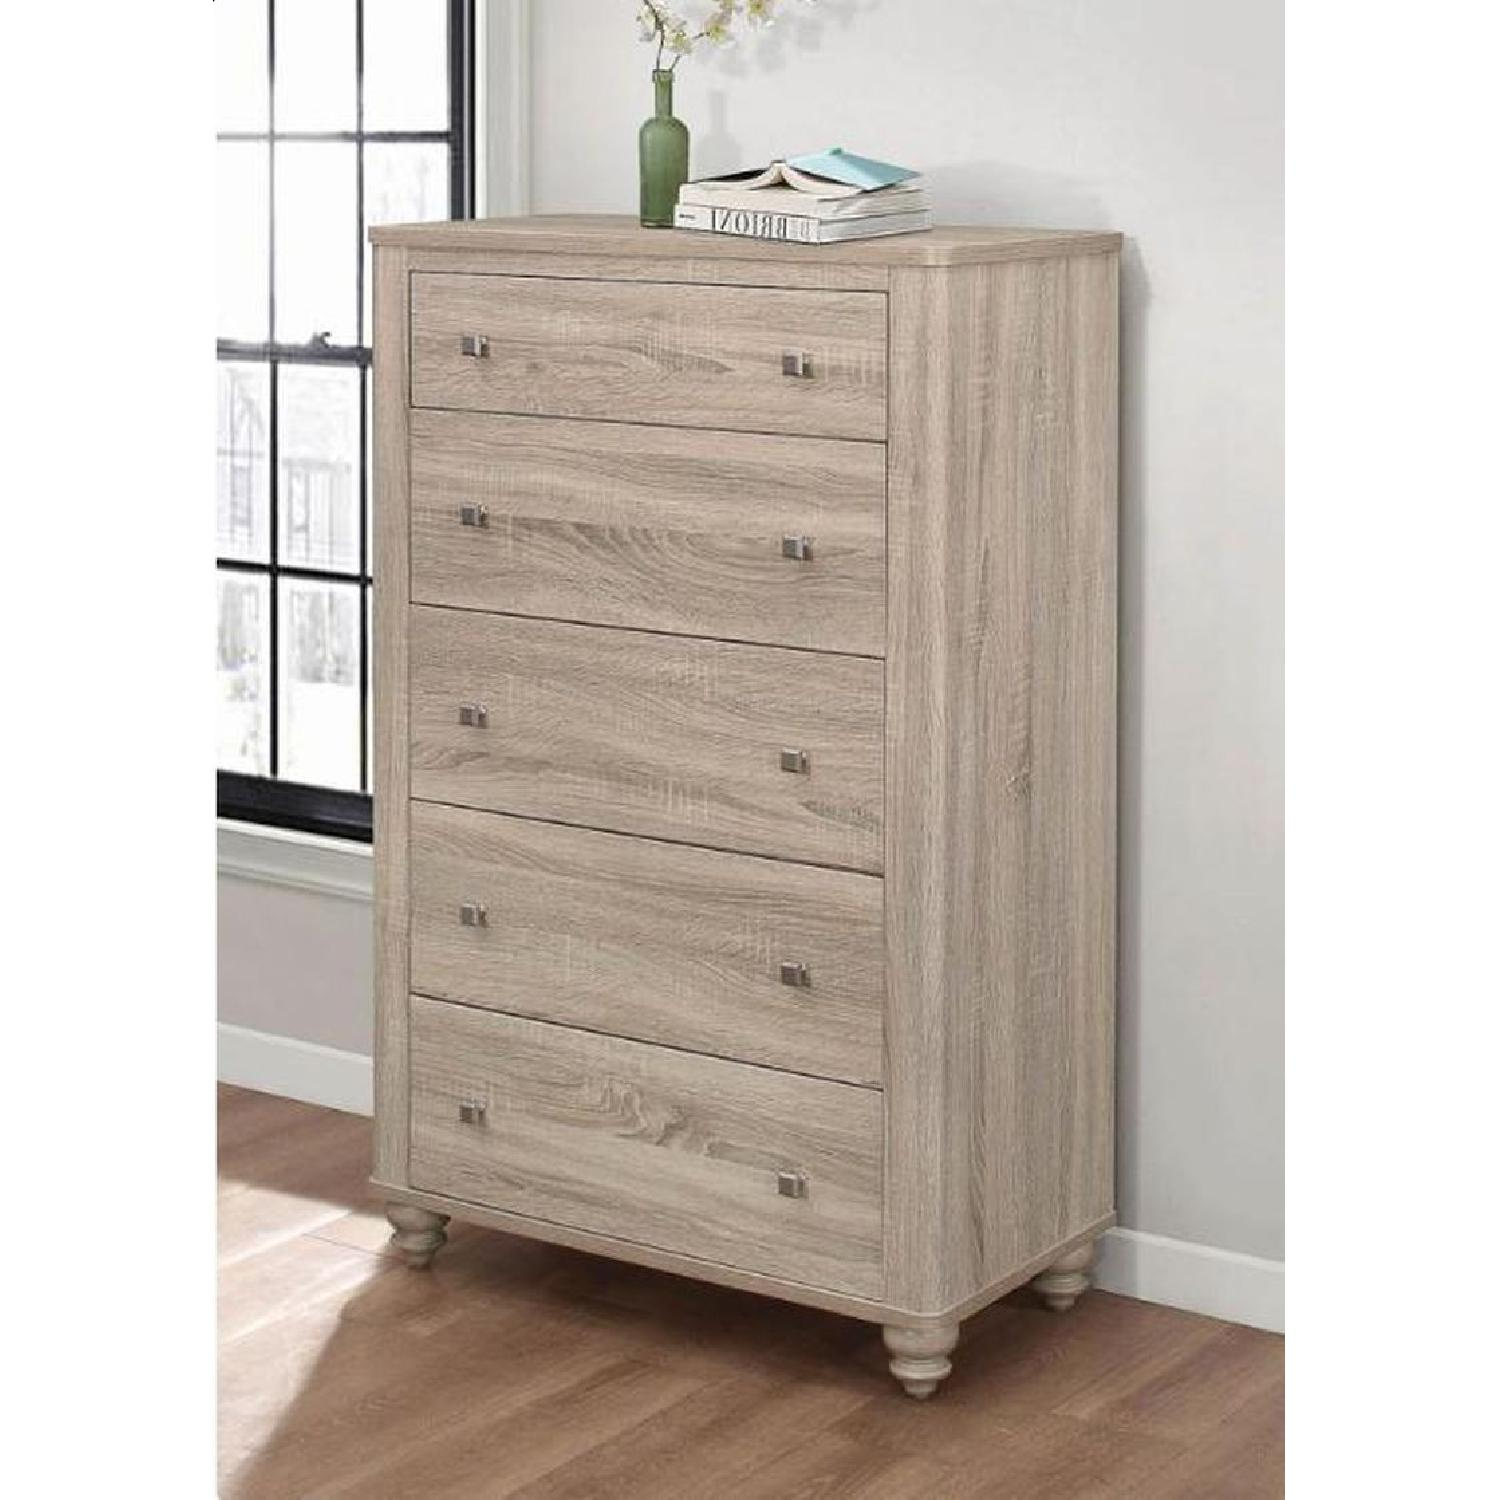 5-Drawer Chest in Natural Finish - image-4